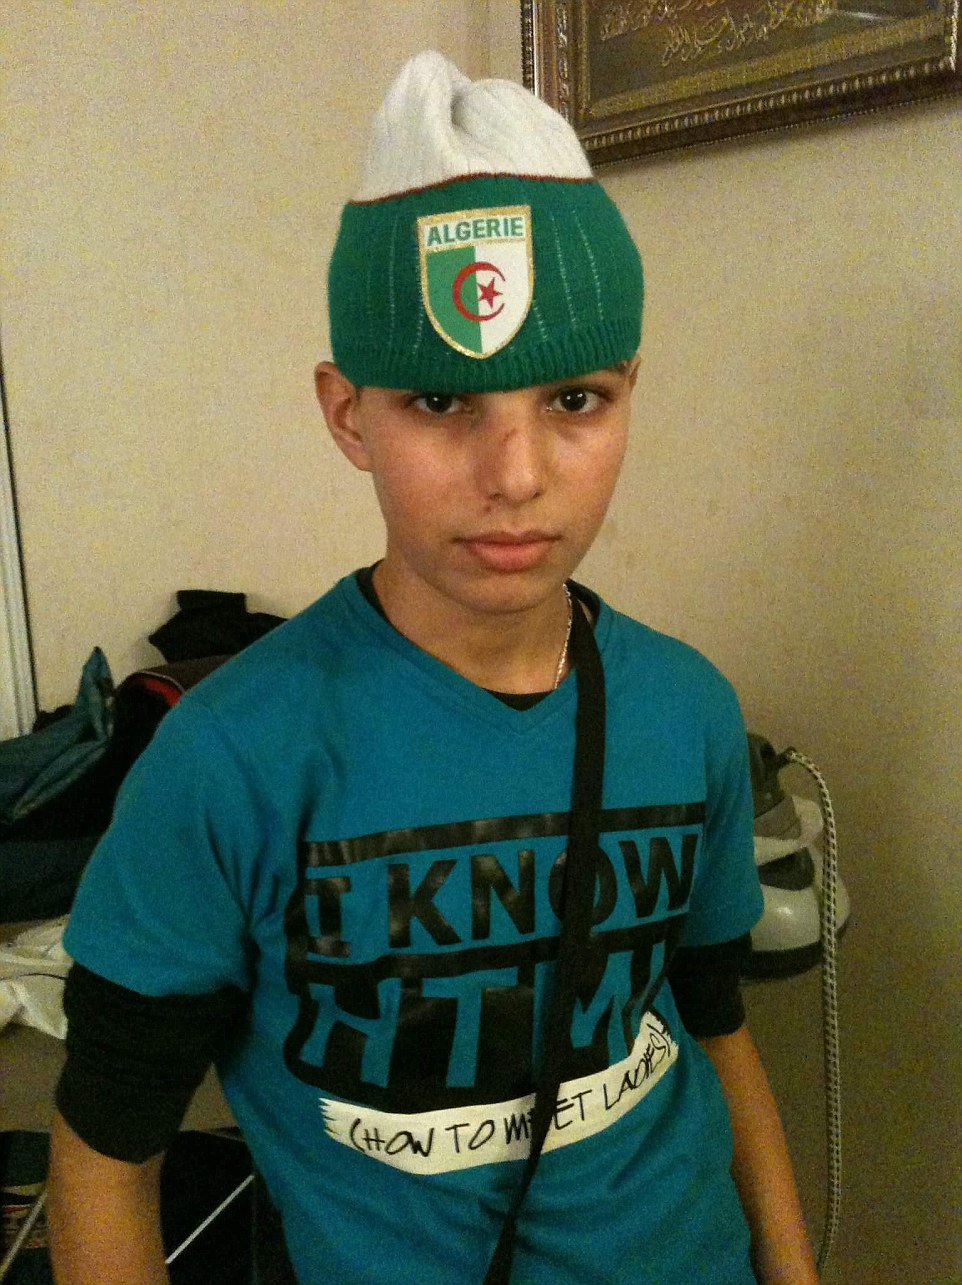 Adel Kermiche (pictured in 2011), 19, has been named as one of the two ISIS knifemen who stormed into a church in Normandy and cut the throat of an 84-year-old Catholic priest before being shot dead by police